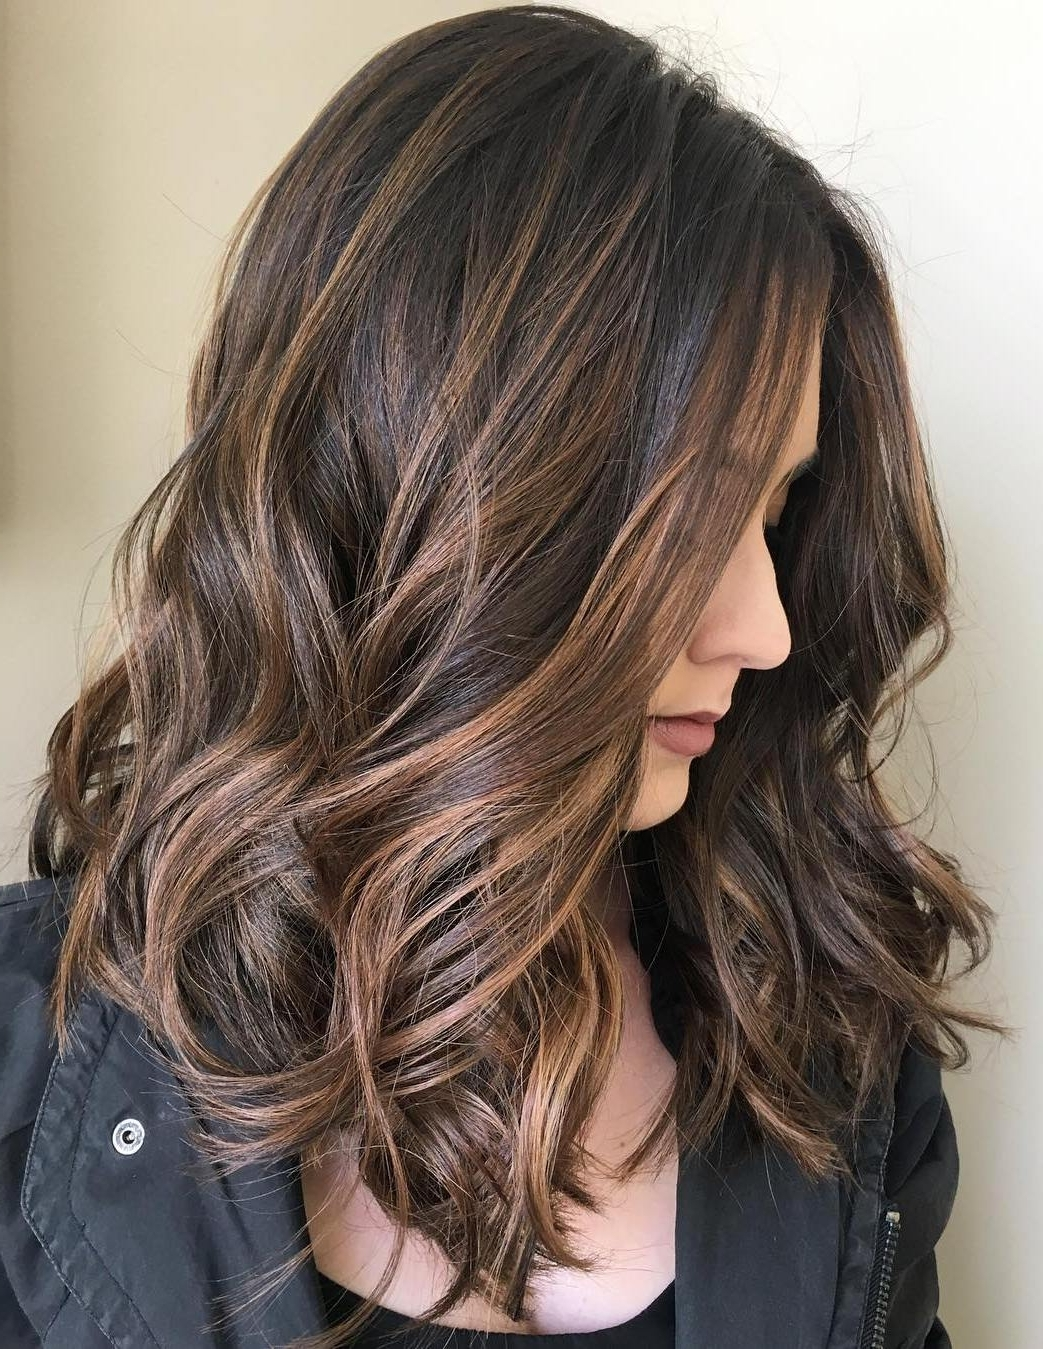 2017 Dirty Blonde Balayage Babylights Hairstyles Regarding 70 Balayage Hair Color Ideas With Blonde, Brown And Caramel Highlights (View 2 of 20)